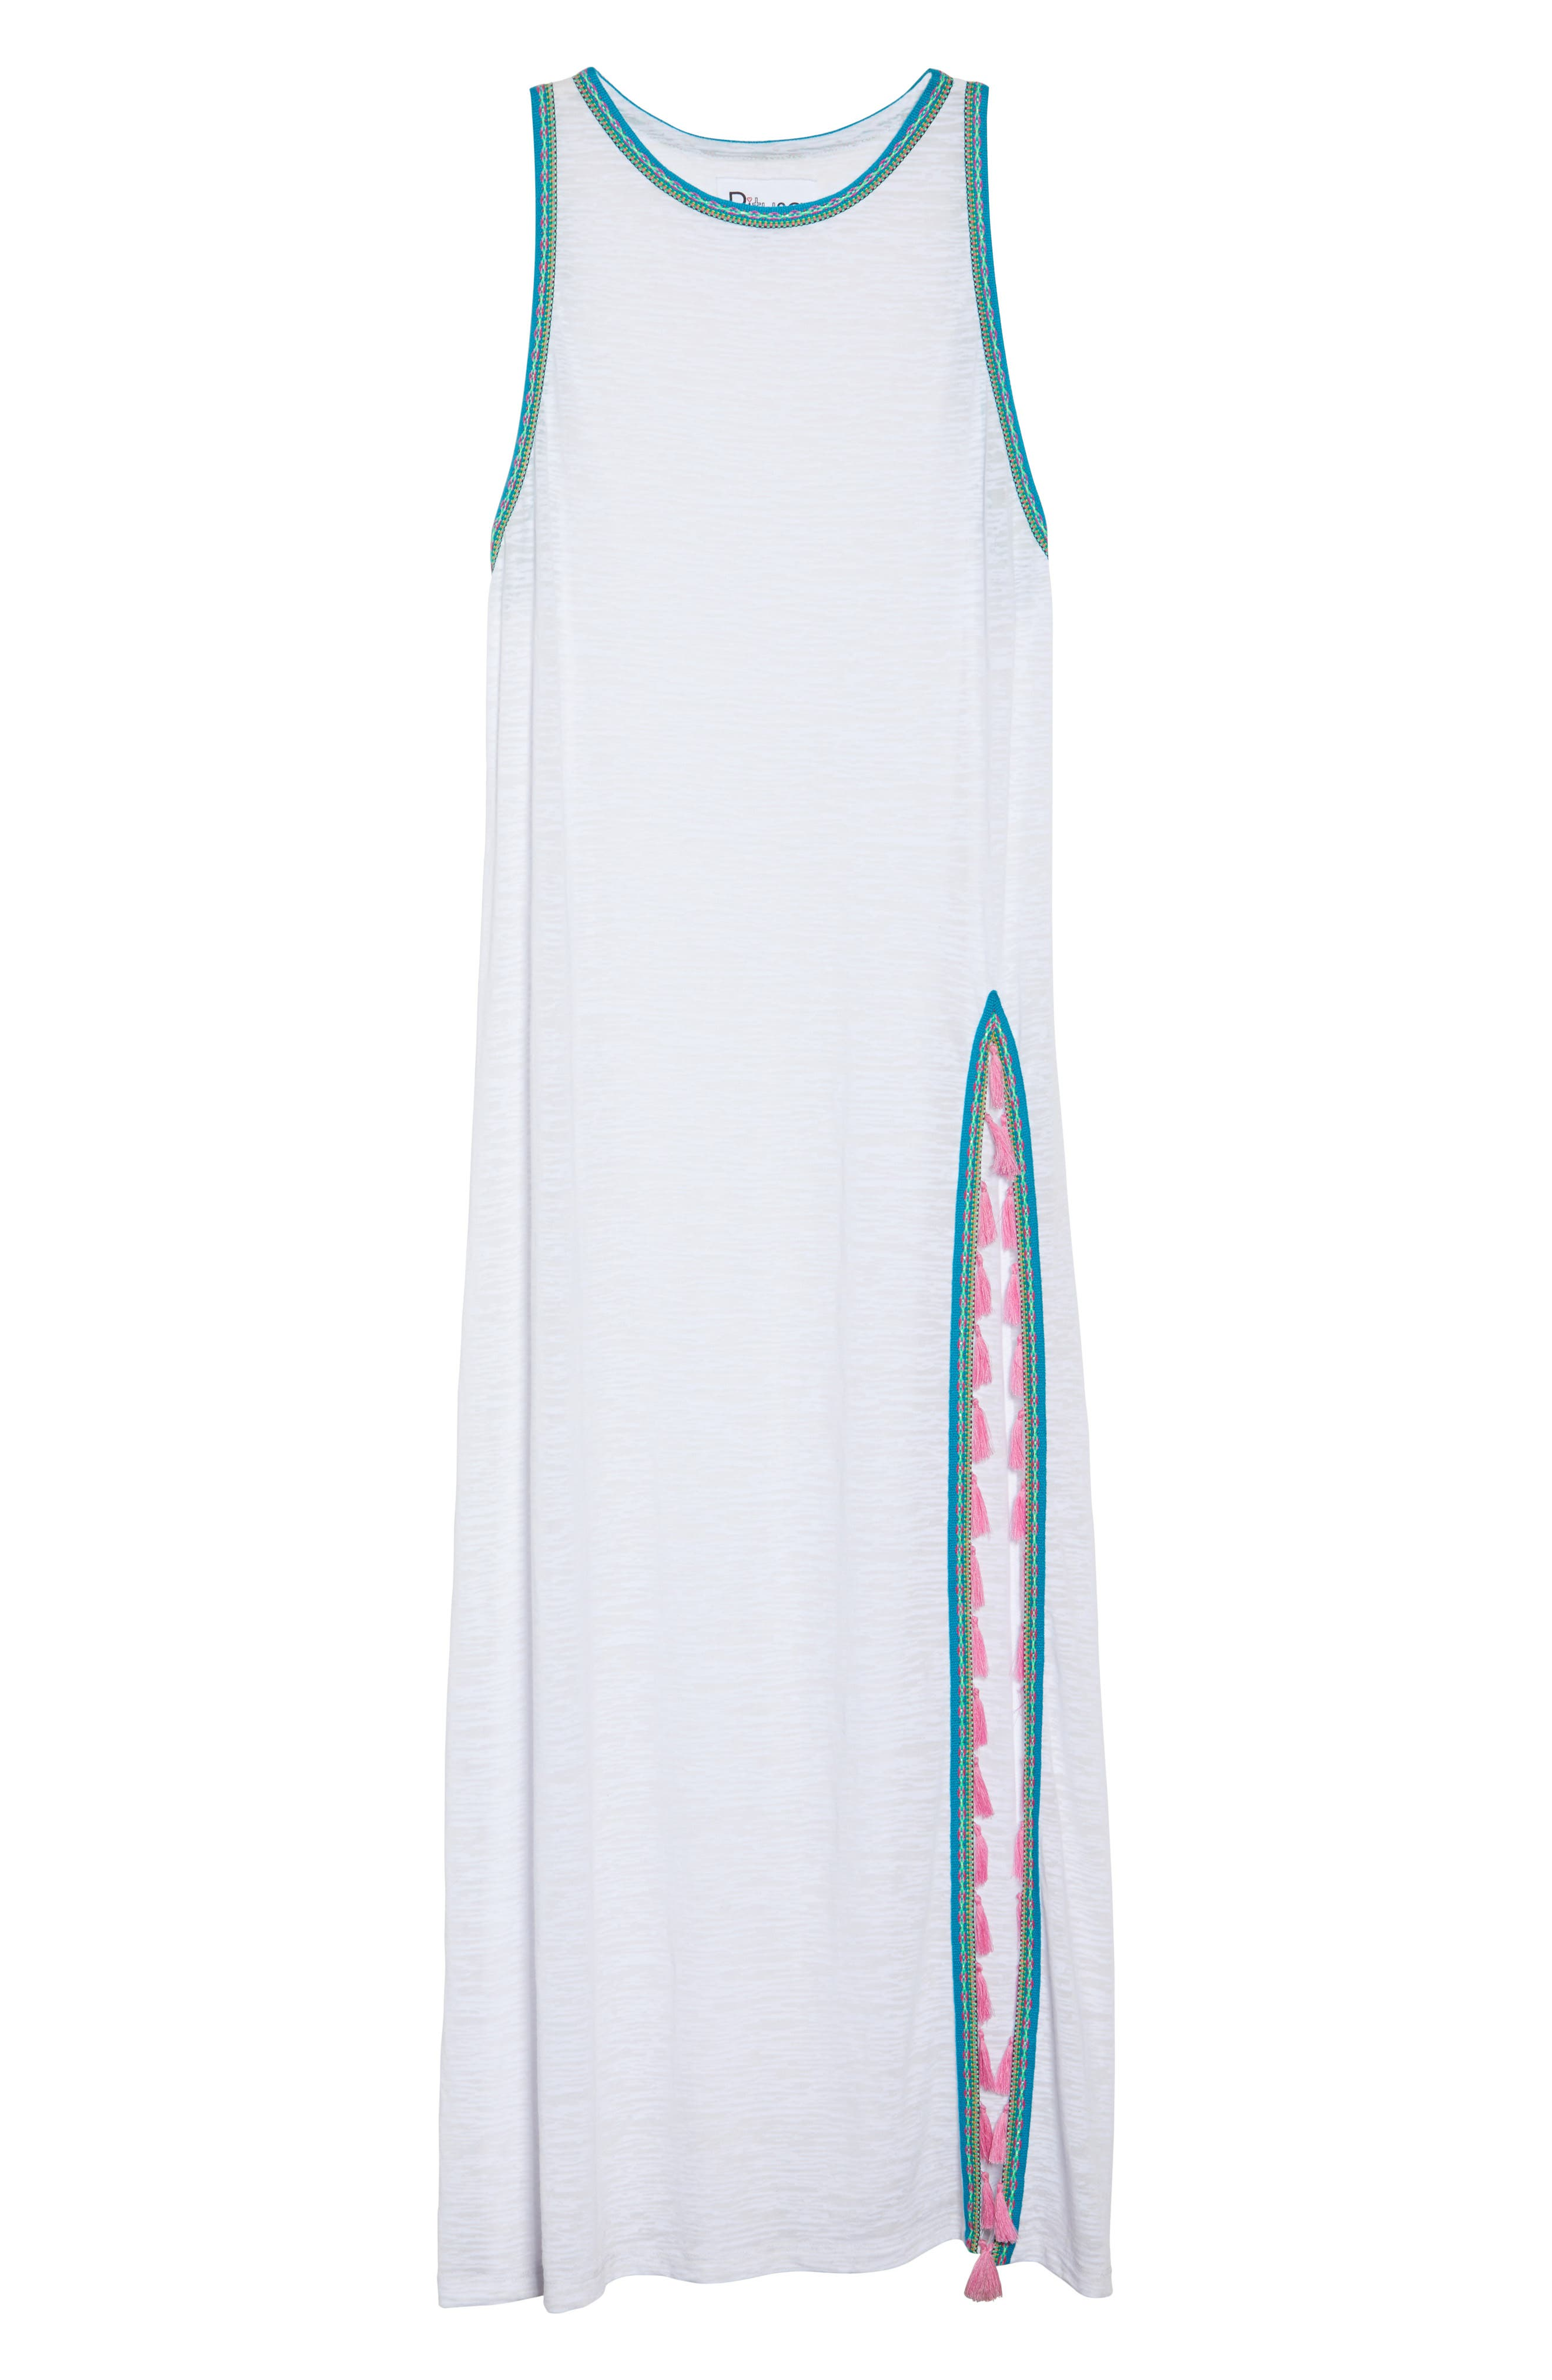 Tassel Slit Cover-Up Maxi Dress,                             Alternate thumbnail 6, color,                             100